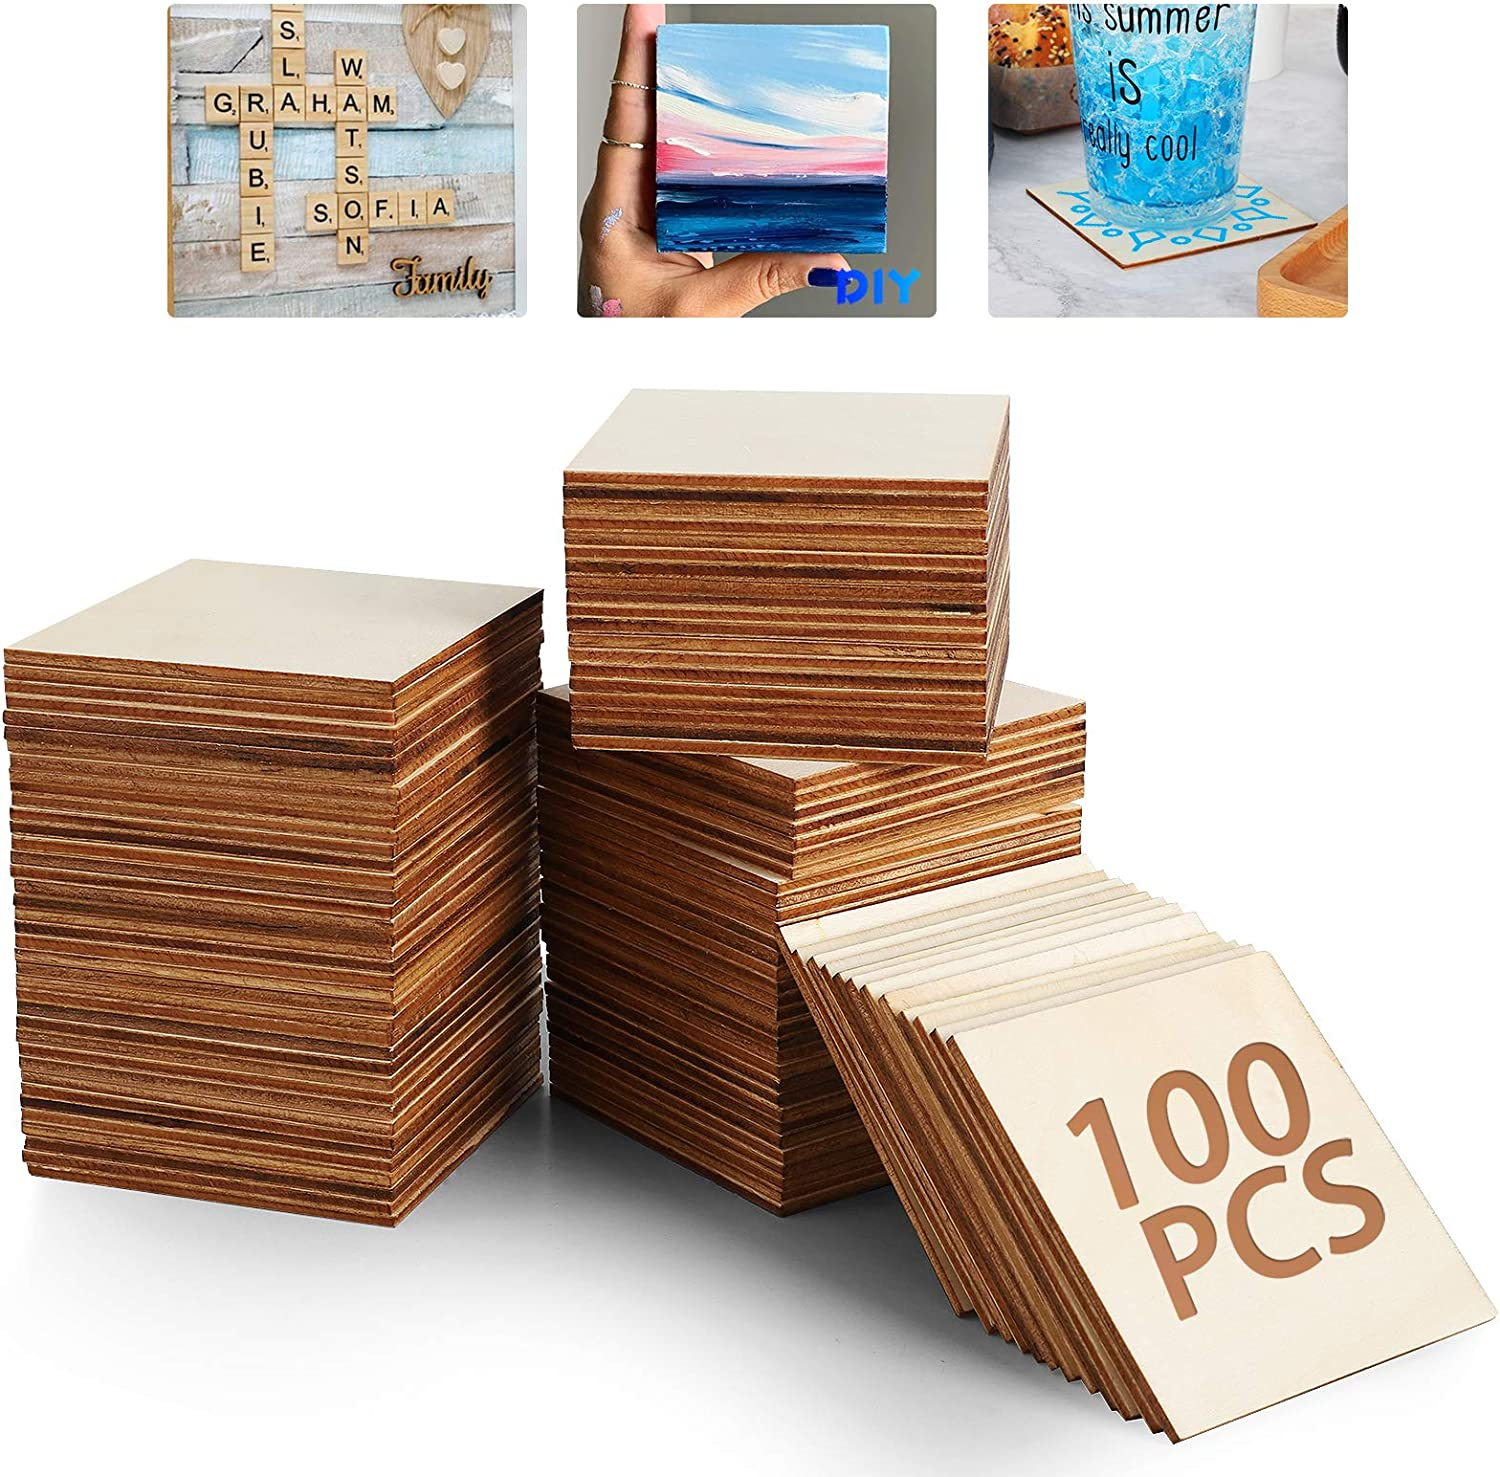 Unfinished Wood Board - 100Pcs 3 x 3in Blank Natural Slices Wood Square for DIY Crafts Painting, Scrable Tiles, Coasters, Pyrography, Decorations